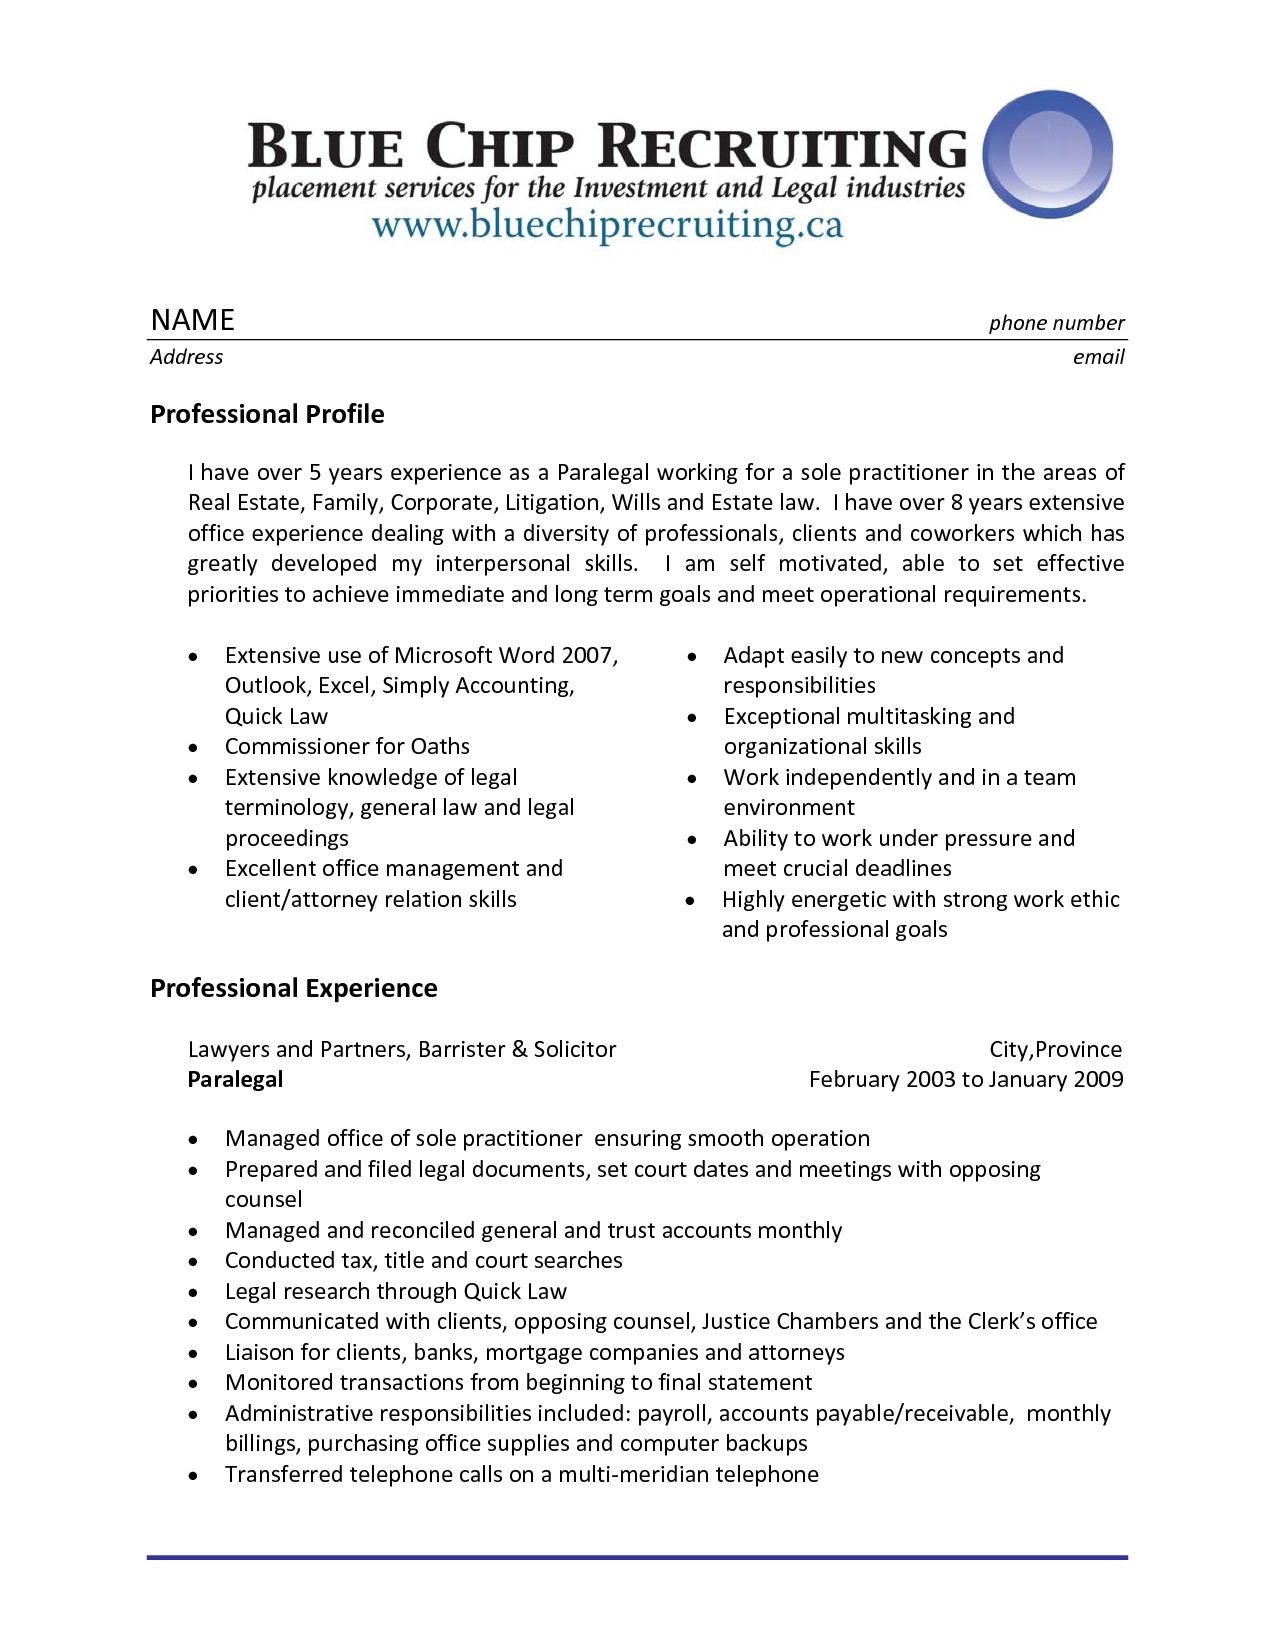 sample resume legal assistant experience professional paralegal professional profile - Paralegal Resume Sample